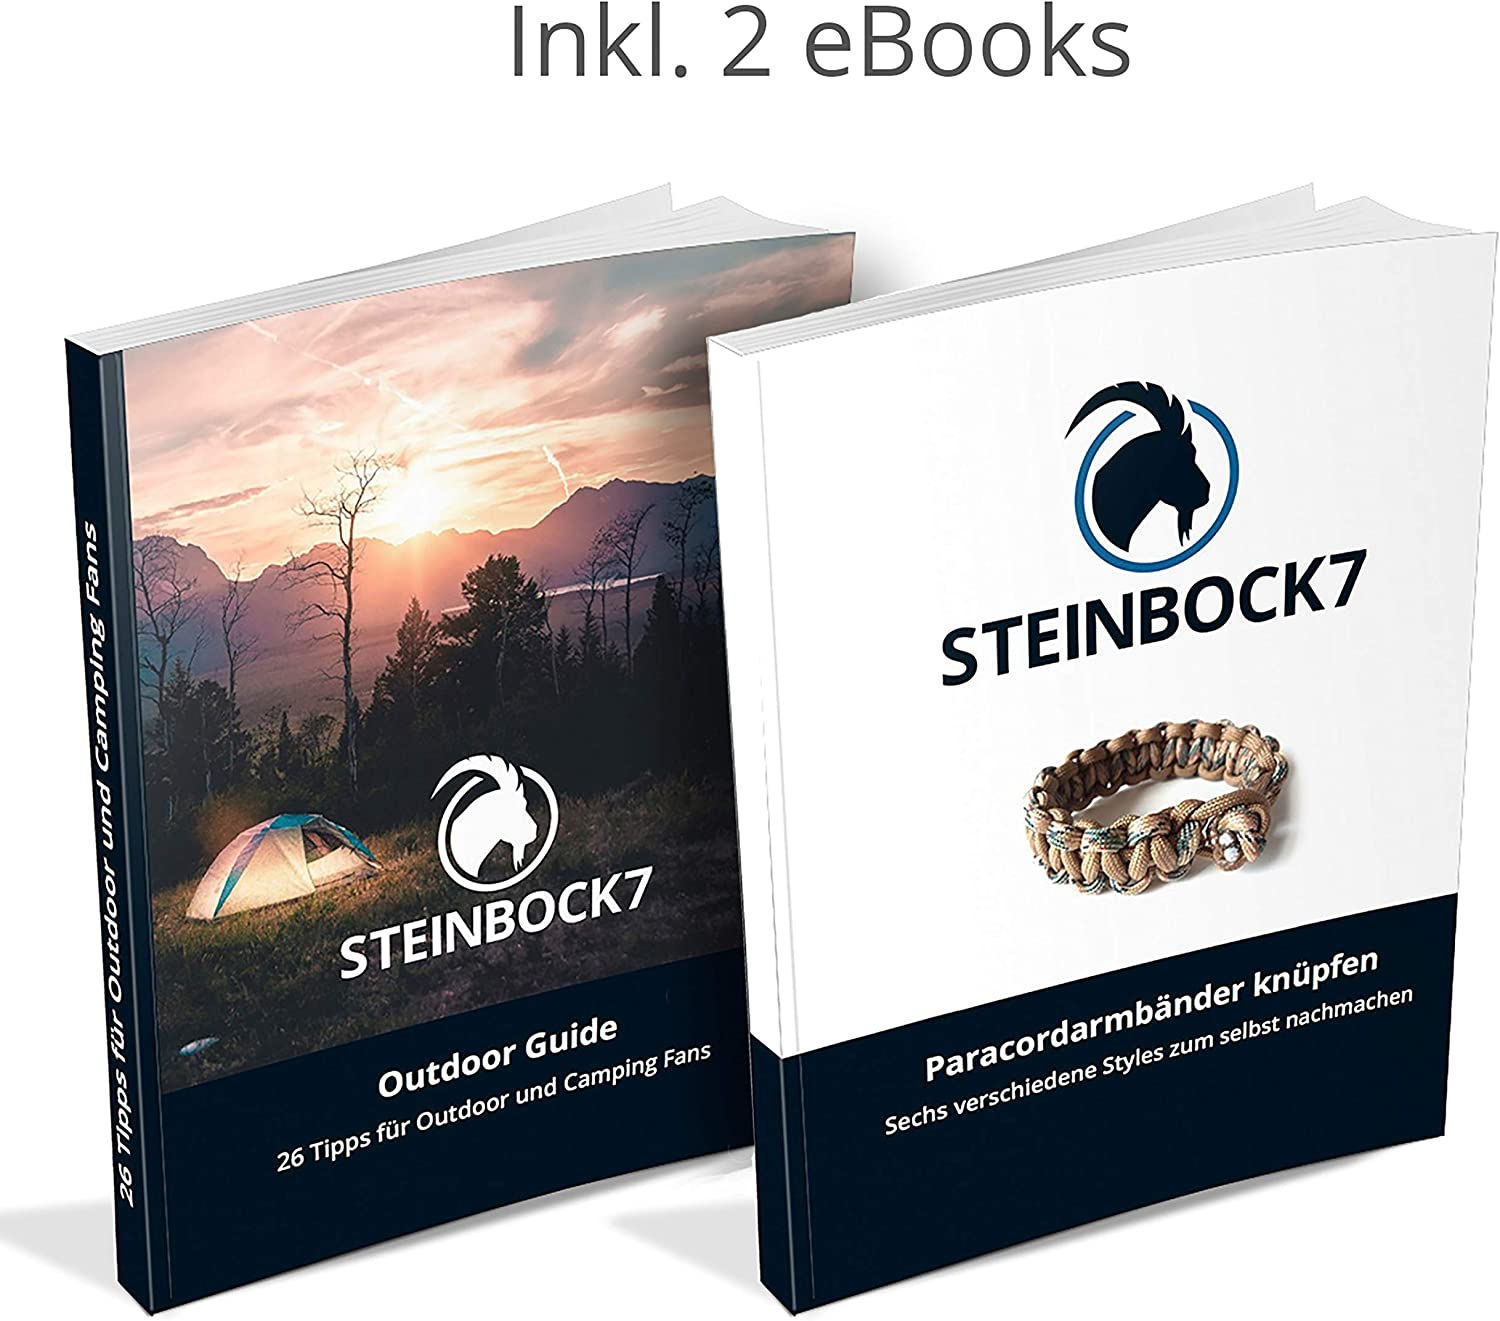 Steinbock7 Capricorn 7 Key Ring Bottle Opener Survival Kit Multitool Carabiner Compass and Whistle Paracord